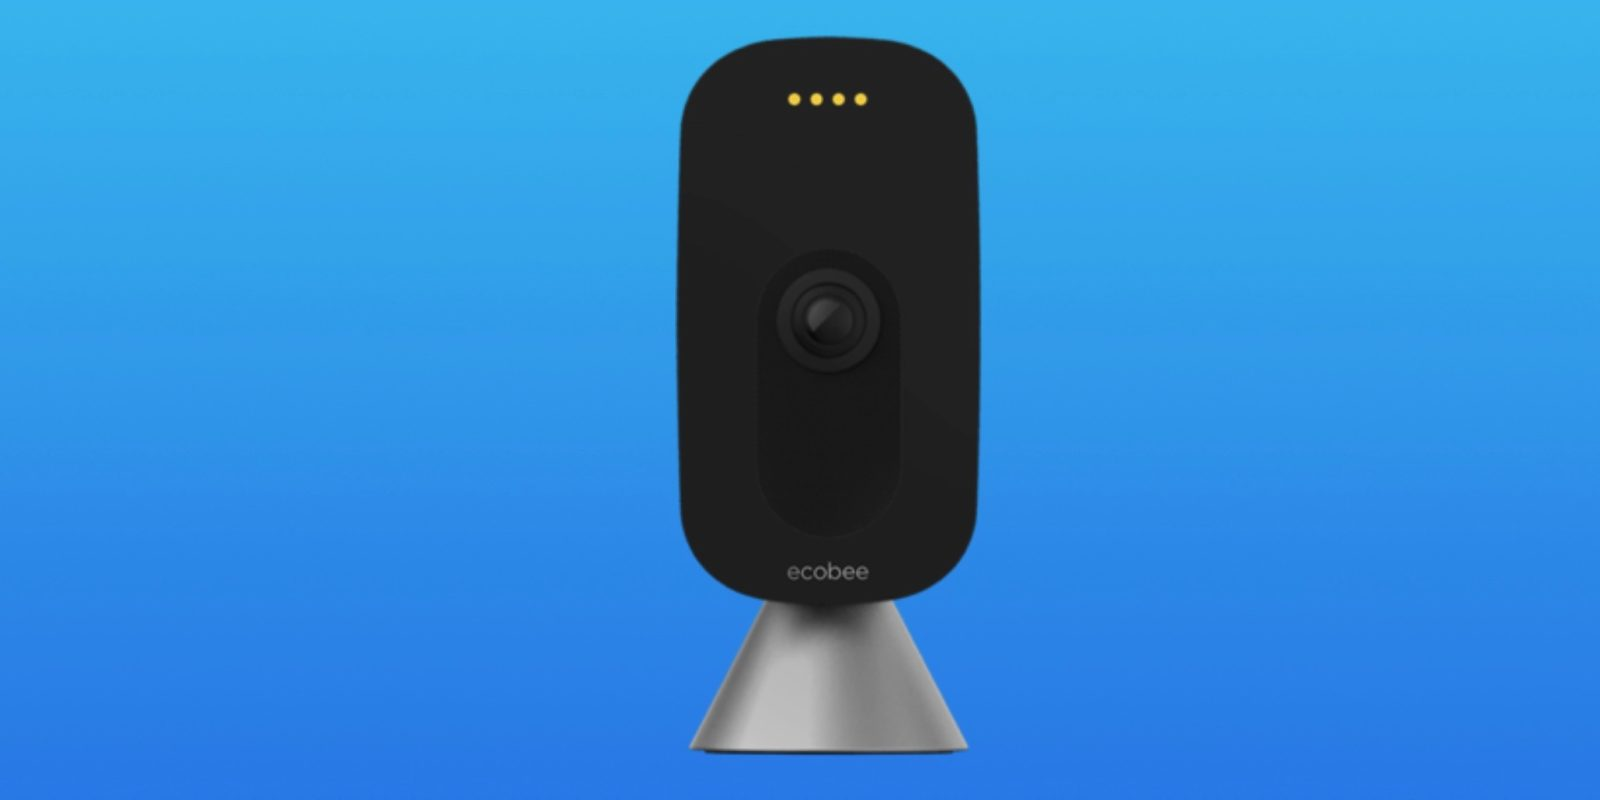 [Update: First look] Ecobee camera leaks with clean black and silver design, likely to include voice control